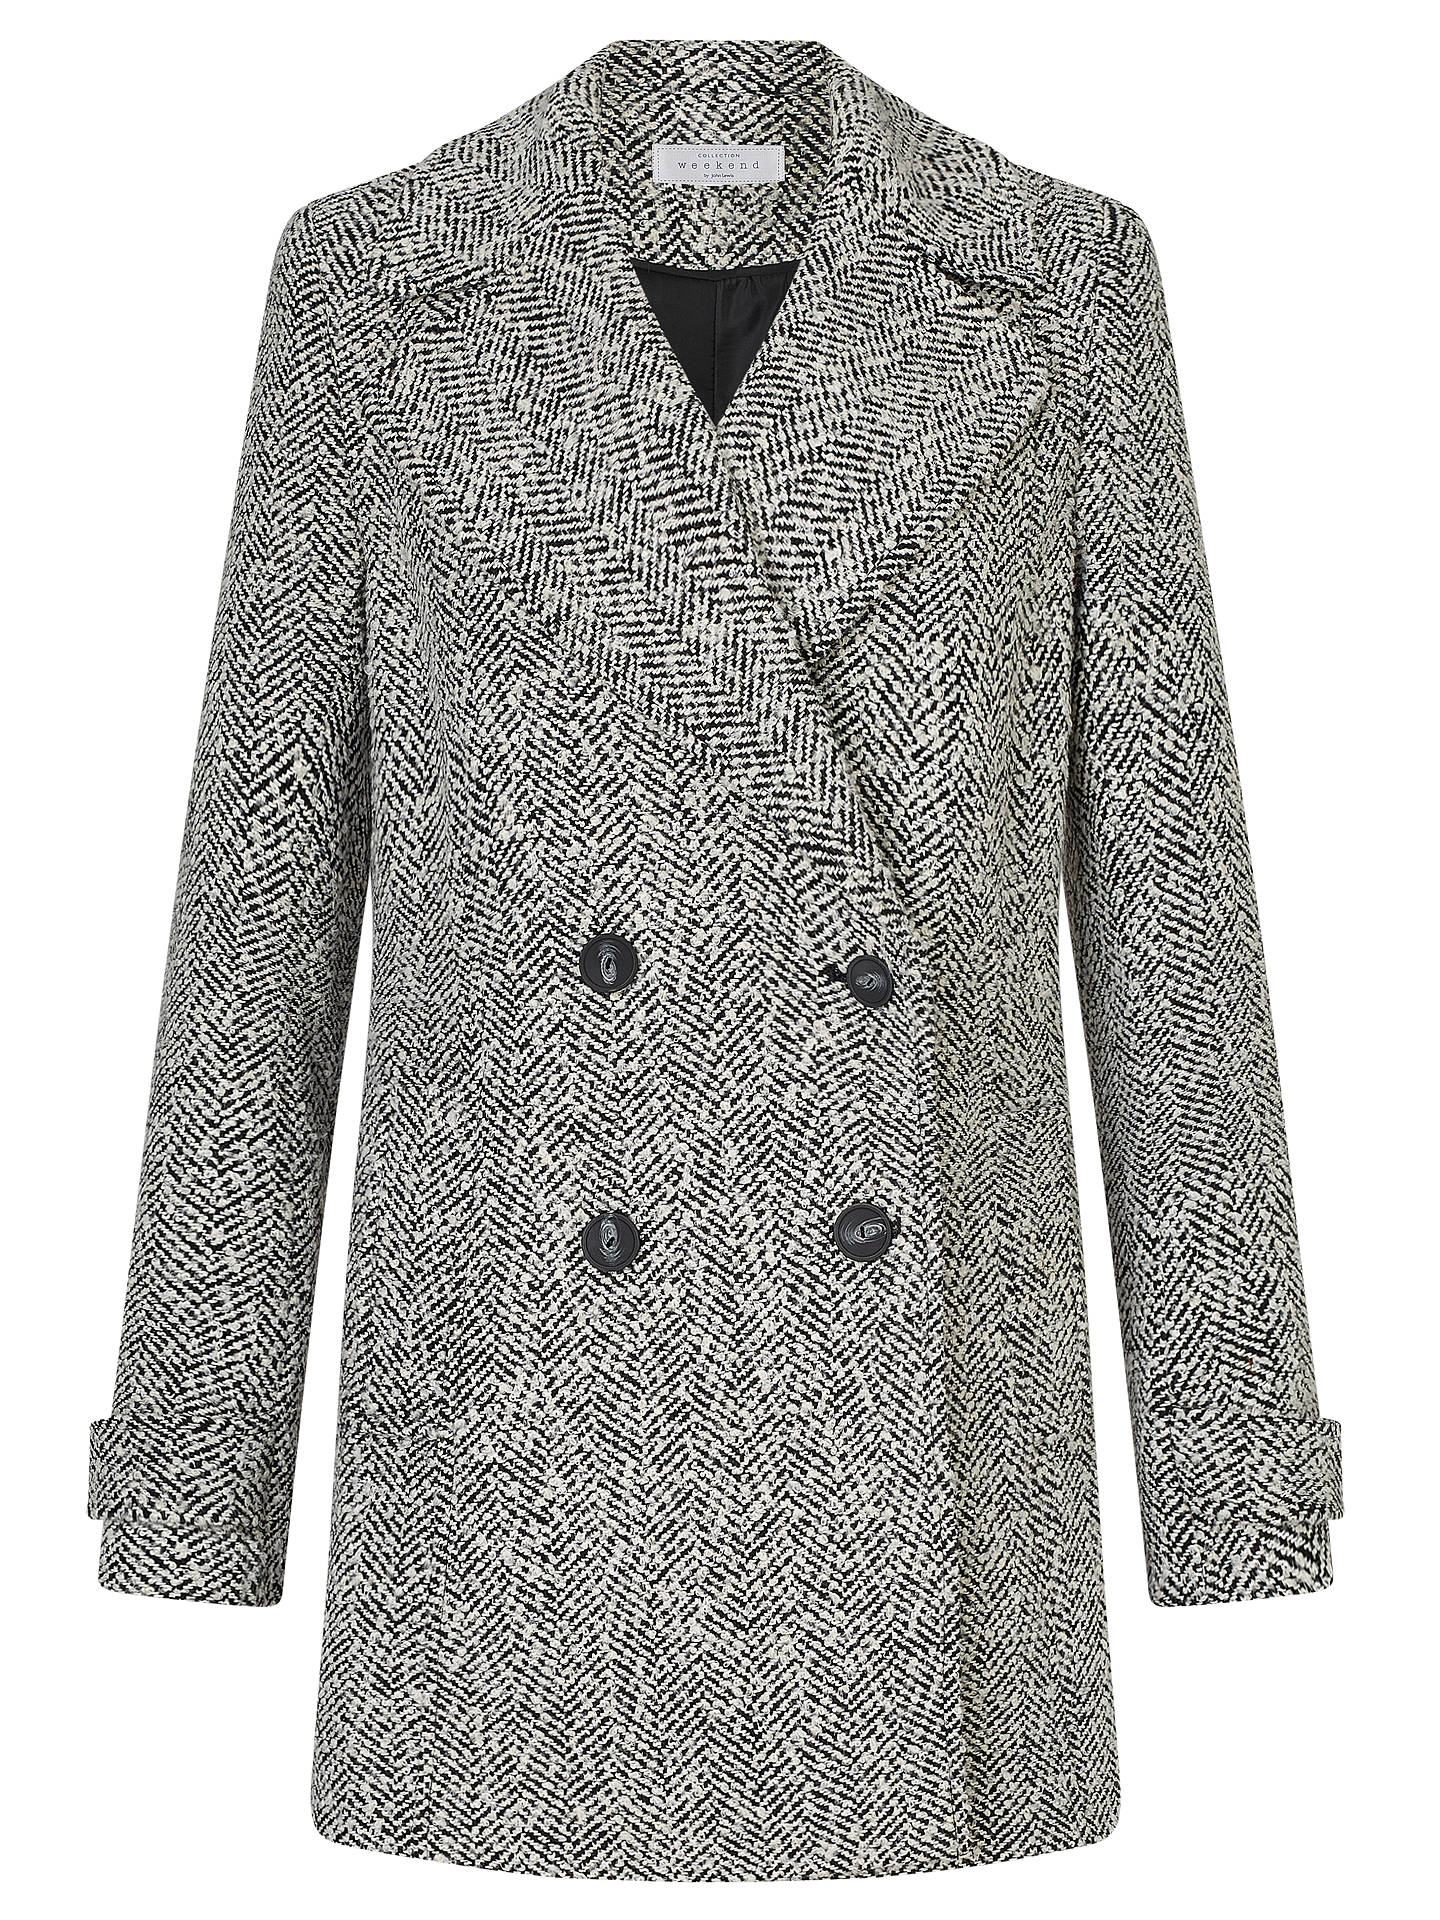 BuyJohn Lewis Relaxed Double Breasted Herringbone Pea Coat, Black/White Texture, 8 Online at johnlewis.com